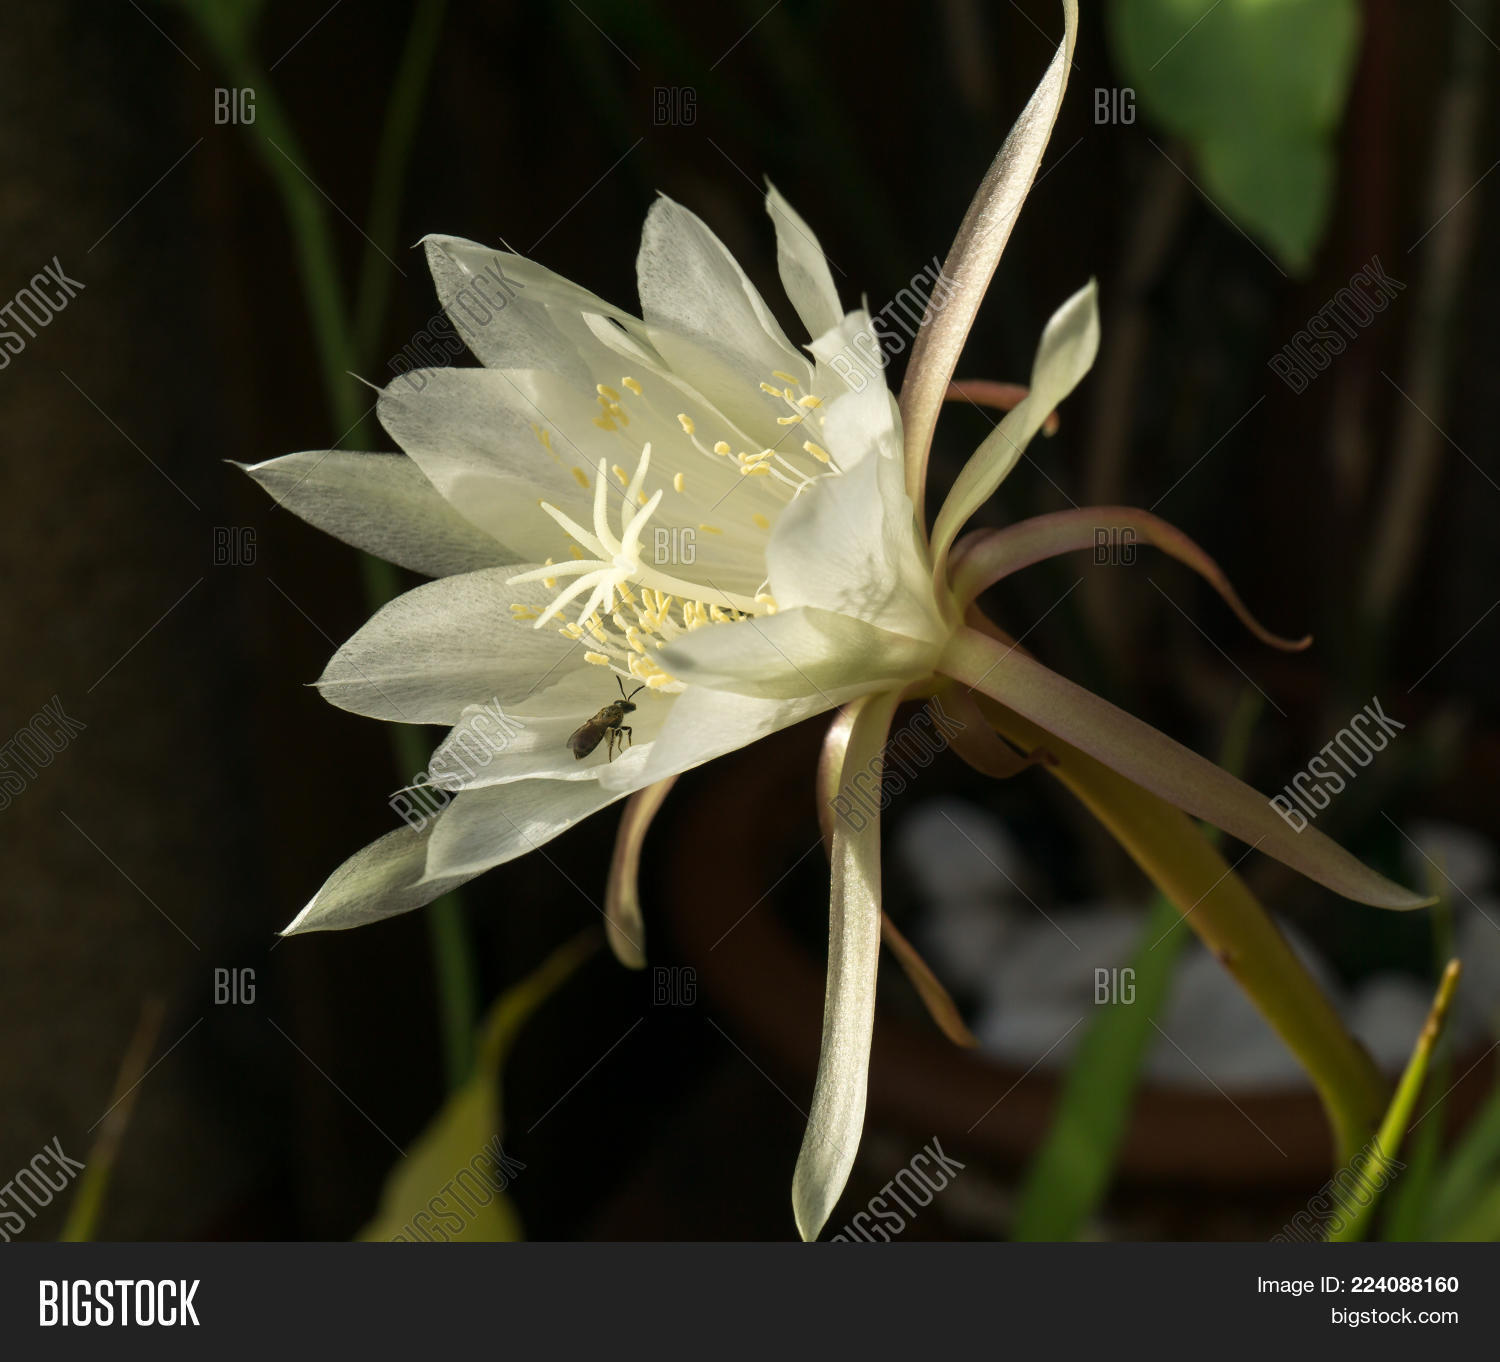 White flower queen image photo free trial bigstock white flower queen of night epiphyllum oxypetalum with a bee pollinating nocturnal very fragrant flower mightylinksfo